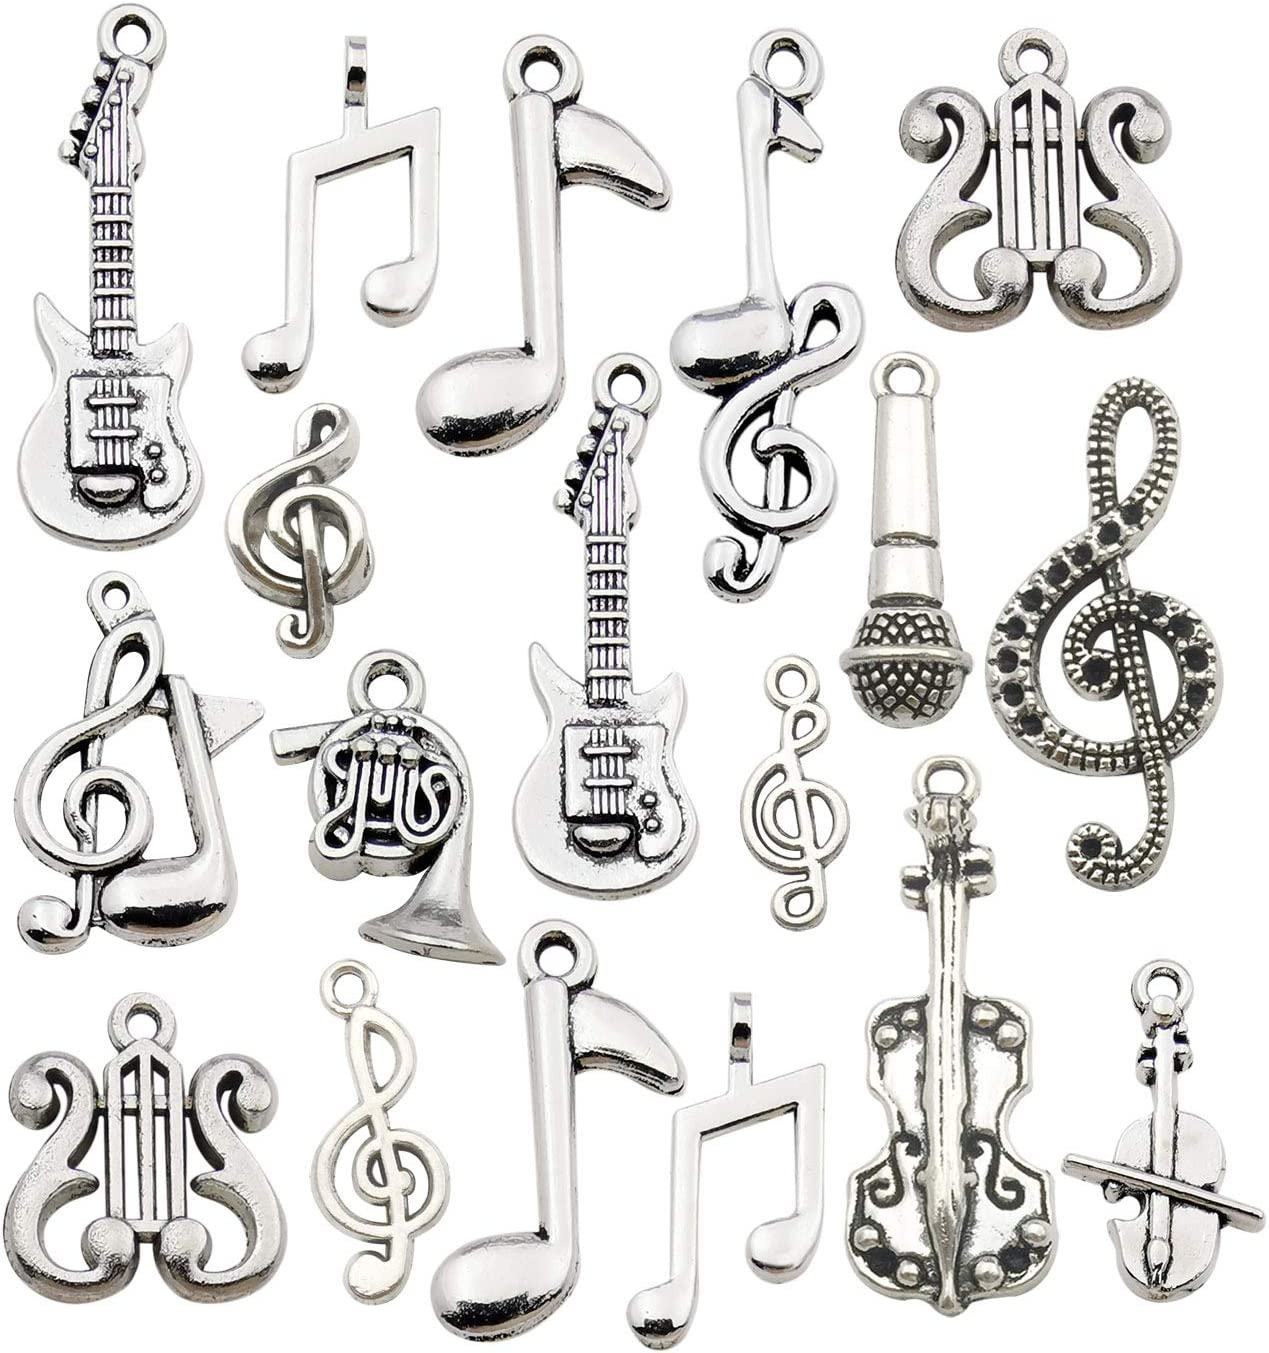 70pcs Craft Supplies Instrument Silver Music Notes Charms Pendants for Crafting, Jewelry Findings Making Accessory for DIY Necklace Bracelet Earrings HM211